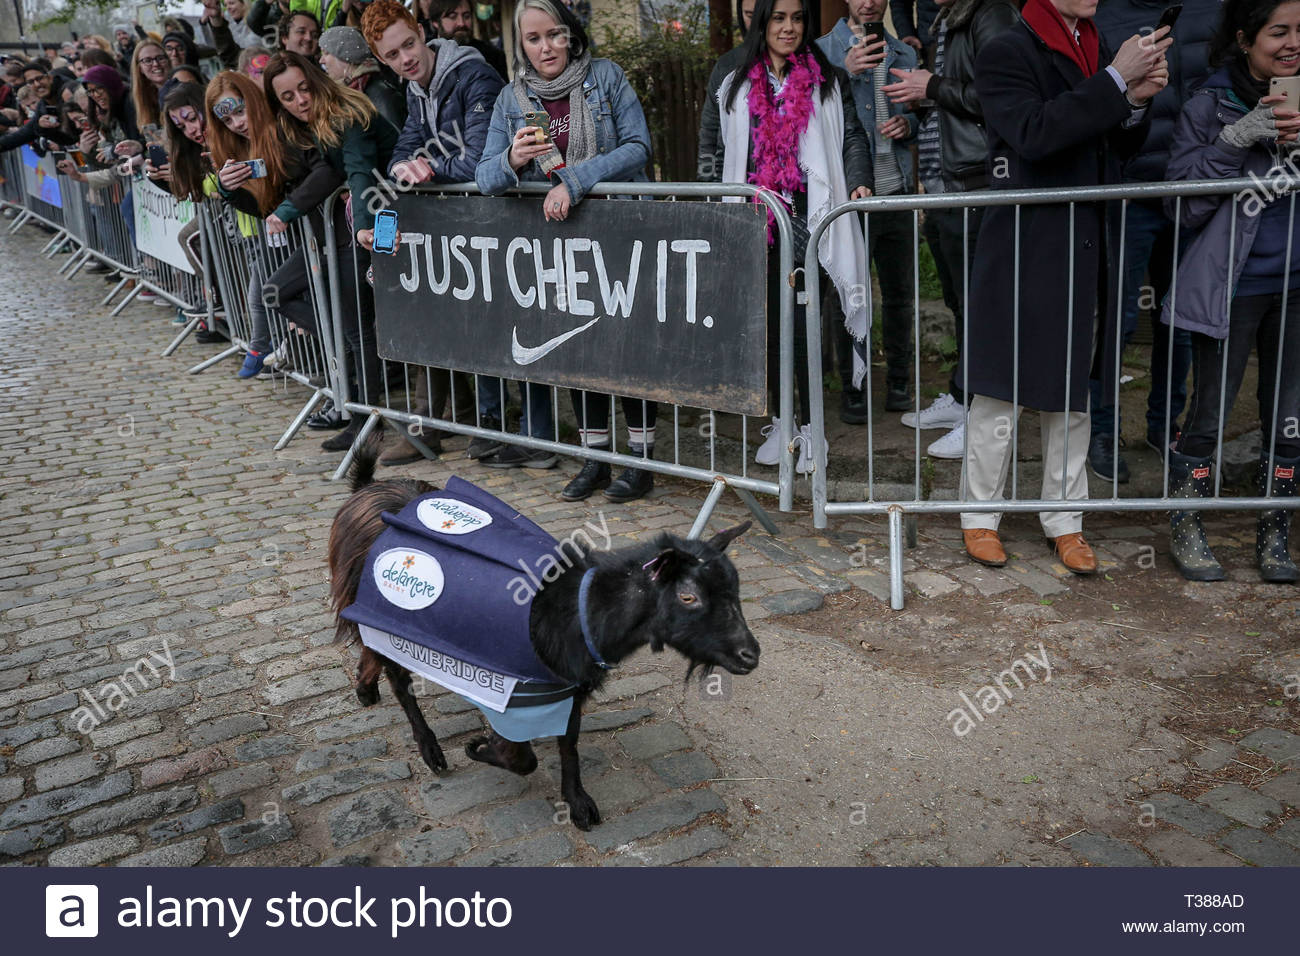 London, UK. 7th April 2019. 11th Annual Oxford vs Cambridge Goat Race at Spitalfields City Farm. Credit: Guy Corbishley/Alamy Live News - Stock Image